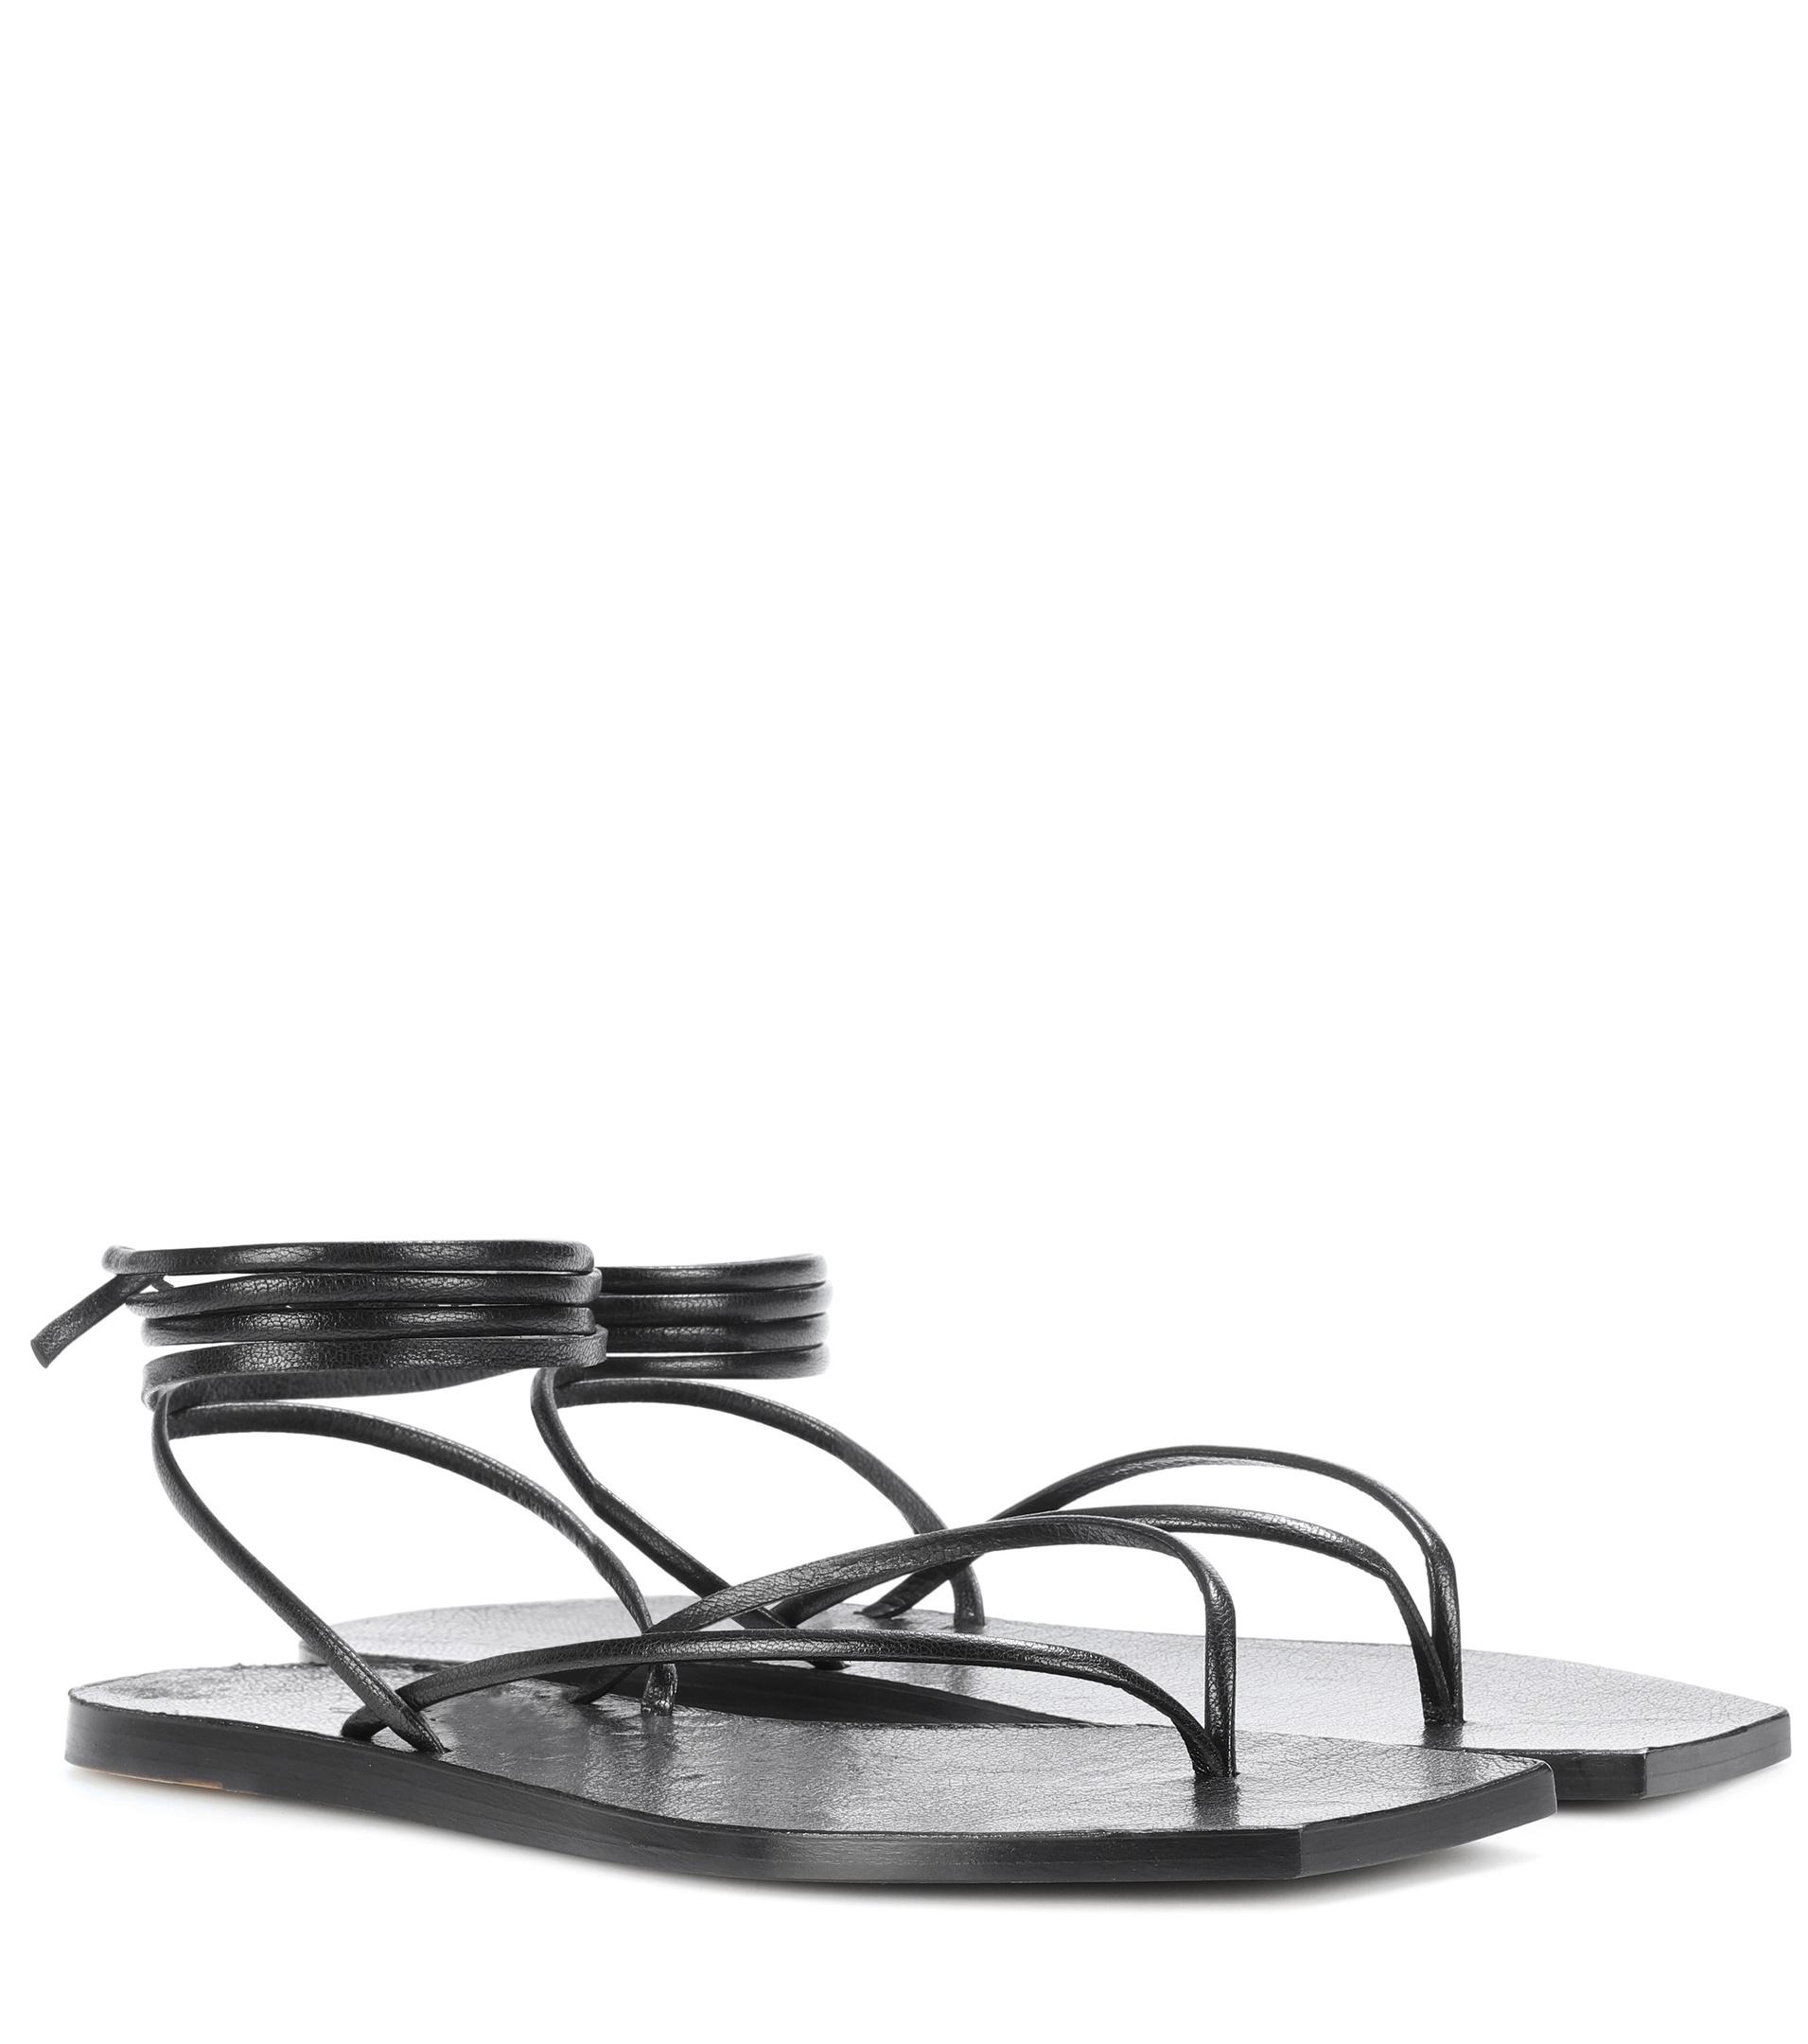 Rick Owens Tangle II leather sandals discount wholesale price tumblr outlet how much amazon online latest for sale JD1Ywvjc